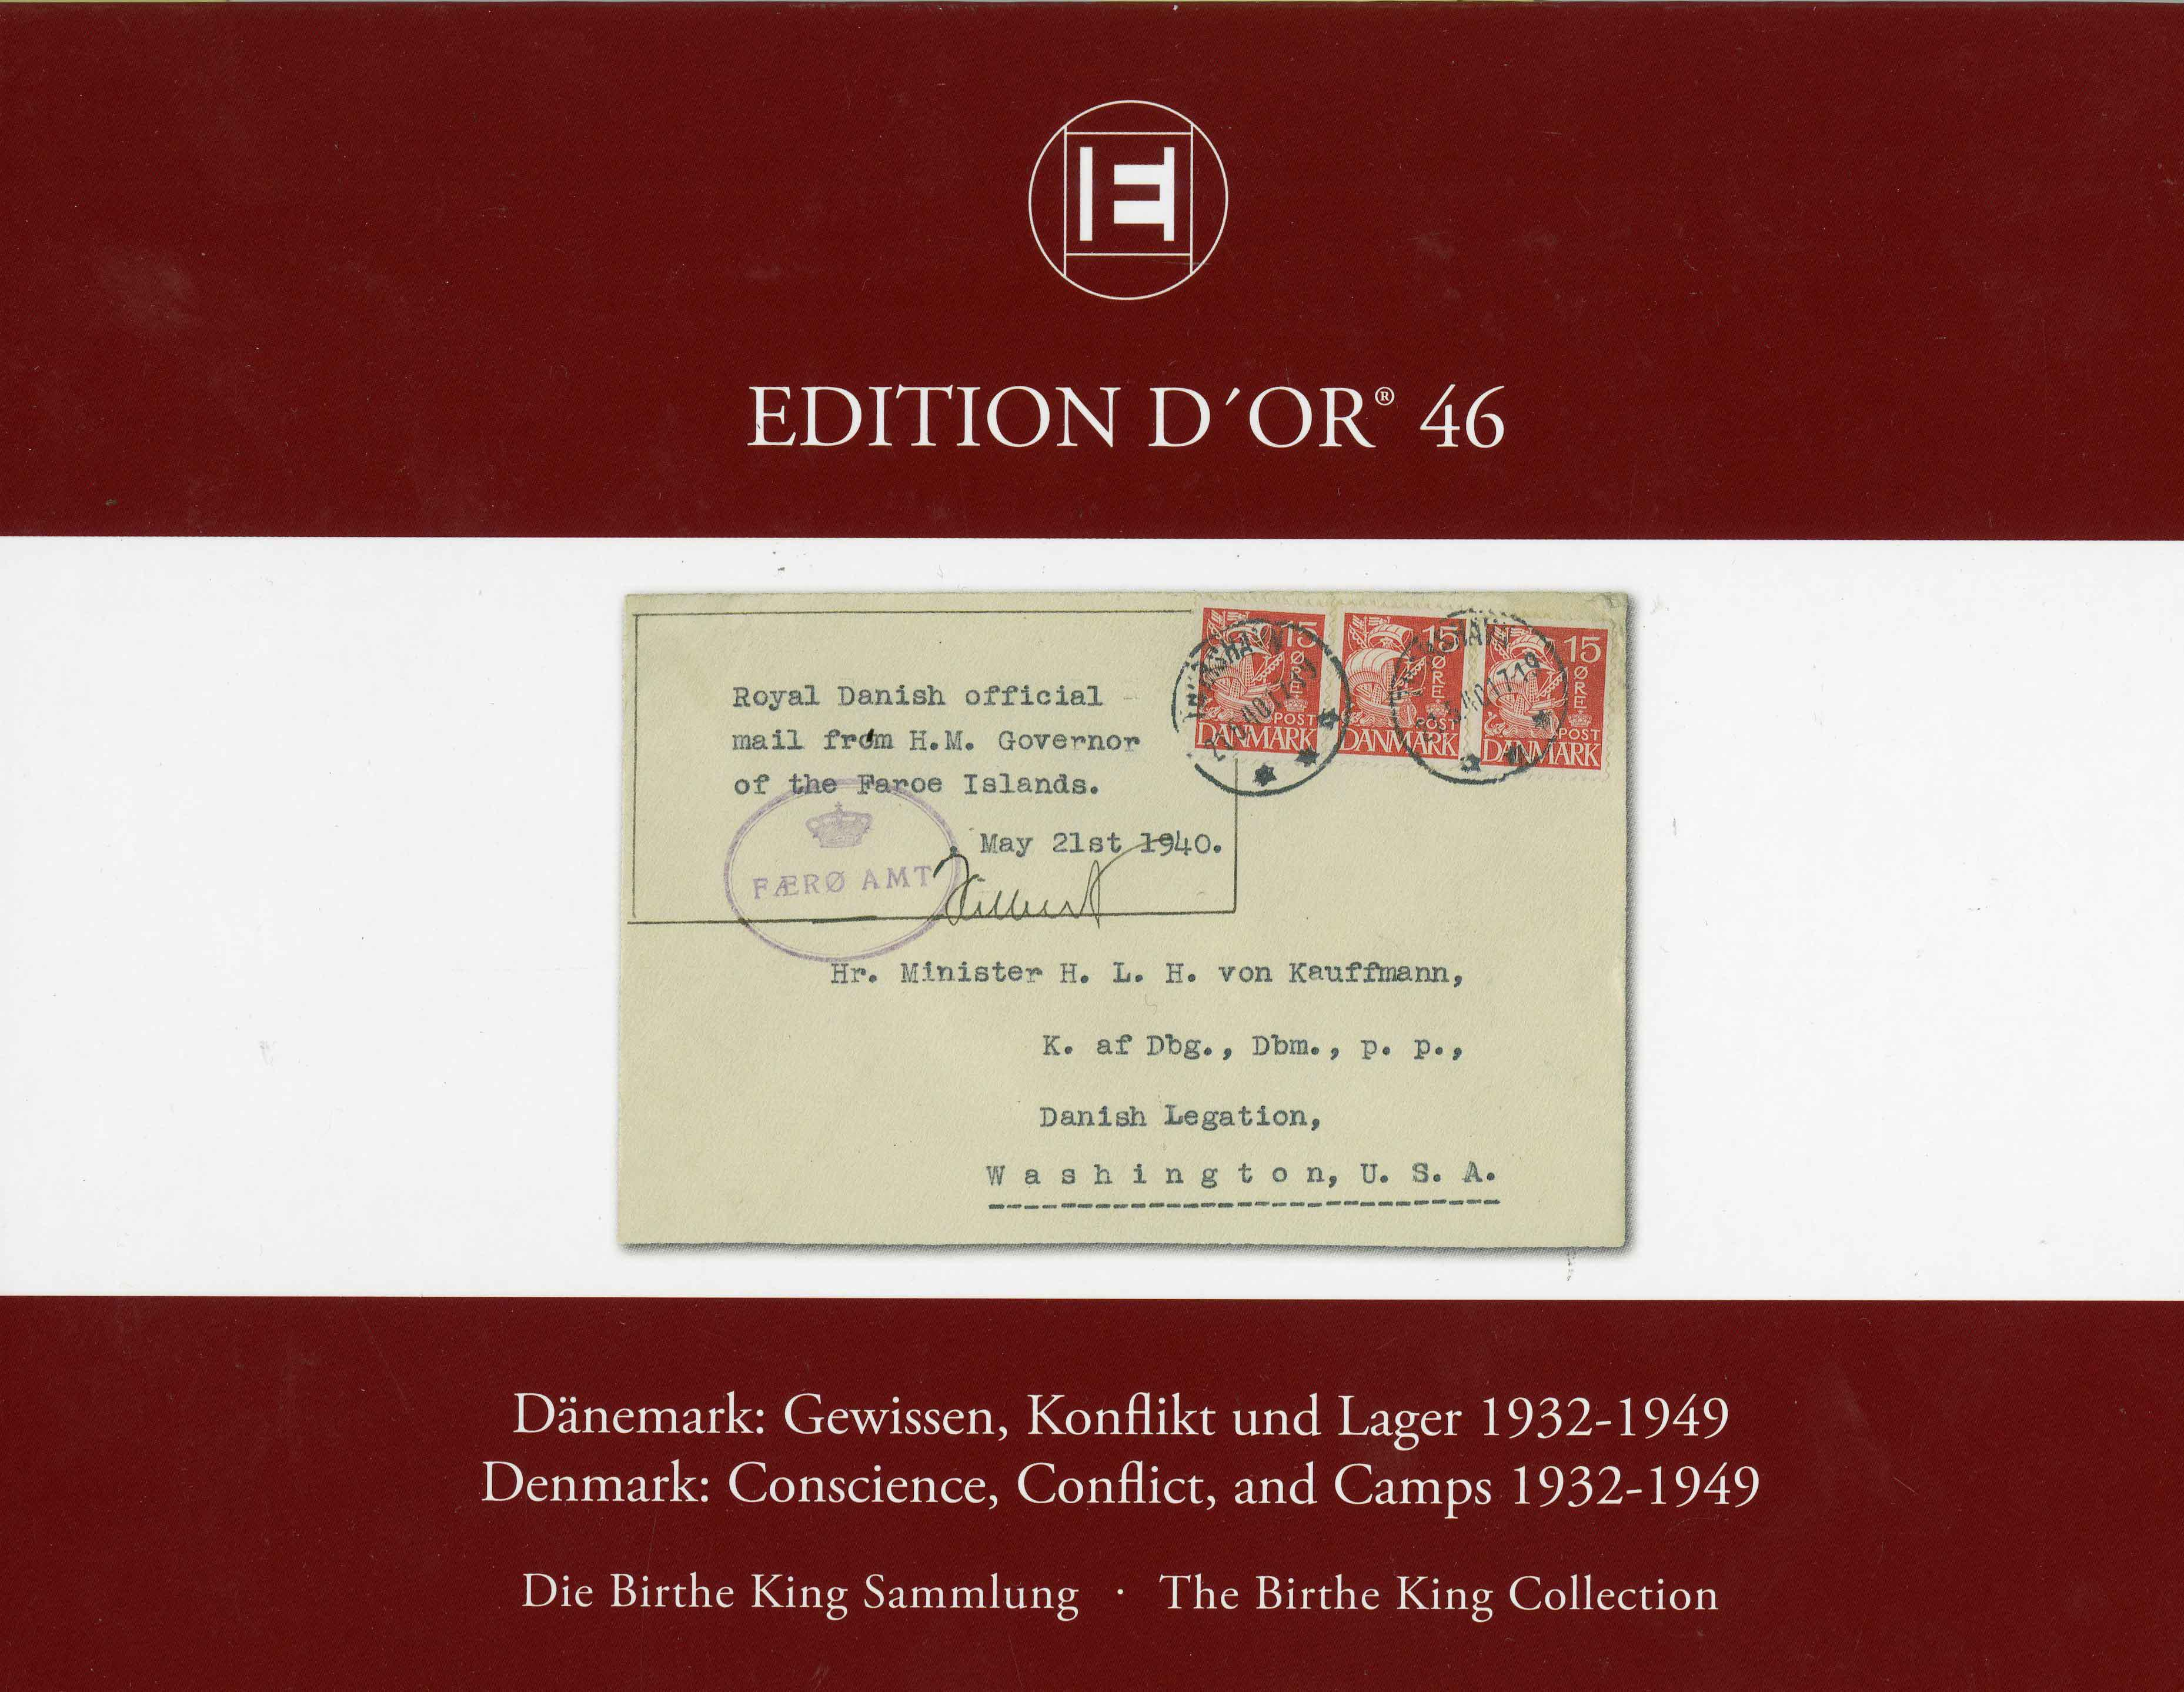 Vol. 46: Denmark - Conscience, Conflict and Camps 1932-1949 • The Birthe King Collection